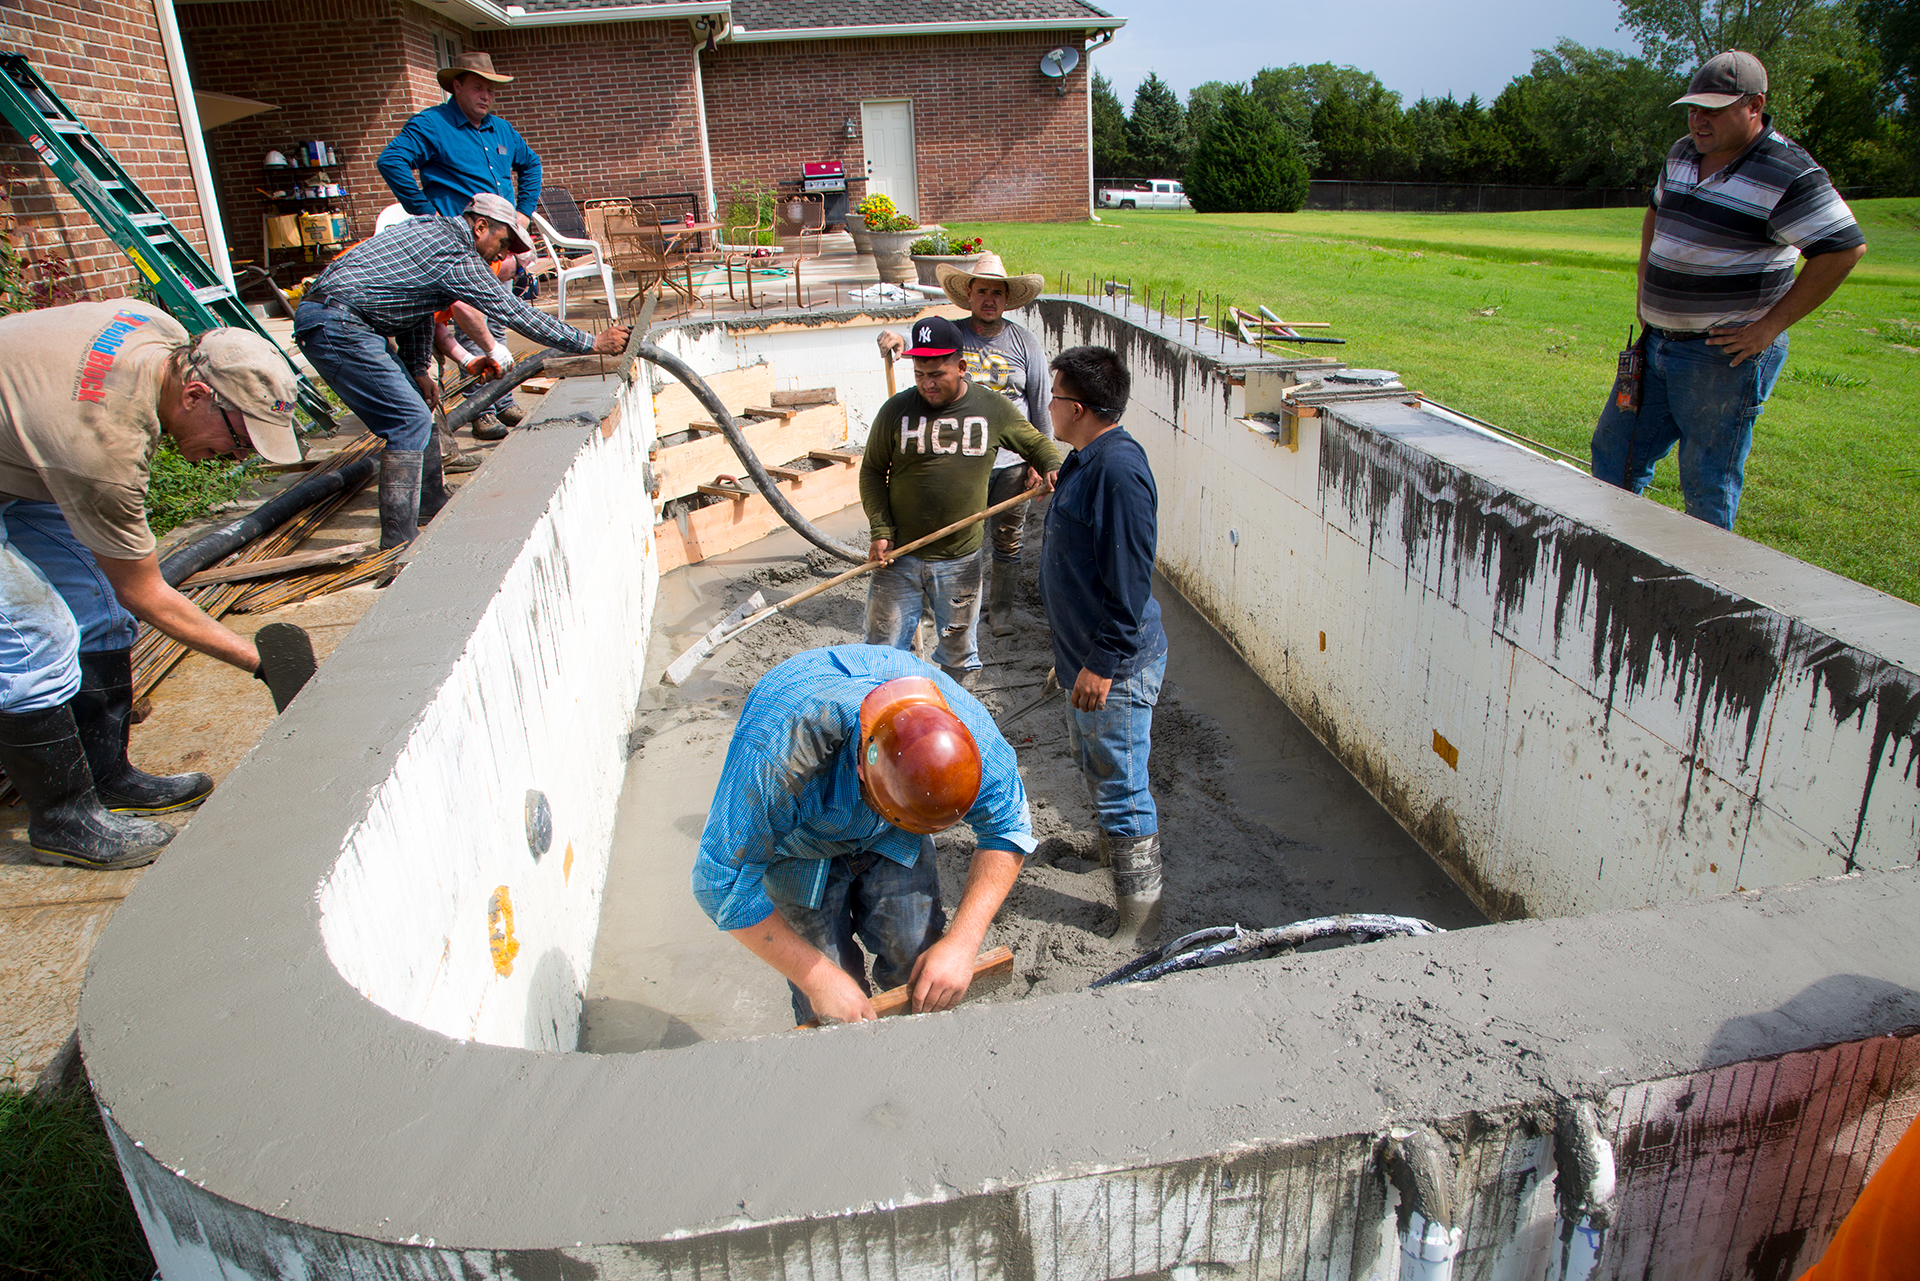 Icf swimming pools buildblock insulating concrete forms for Icf concrete forms for sale